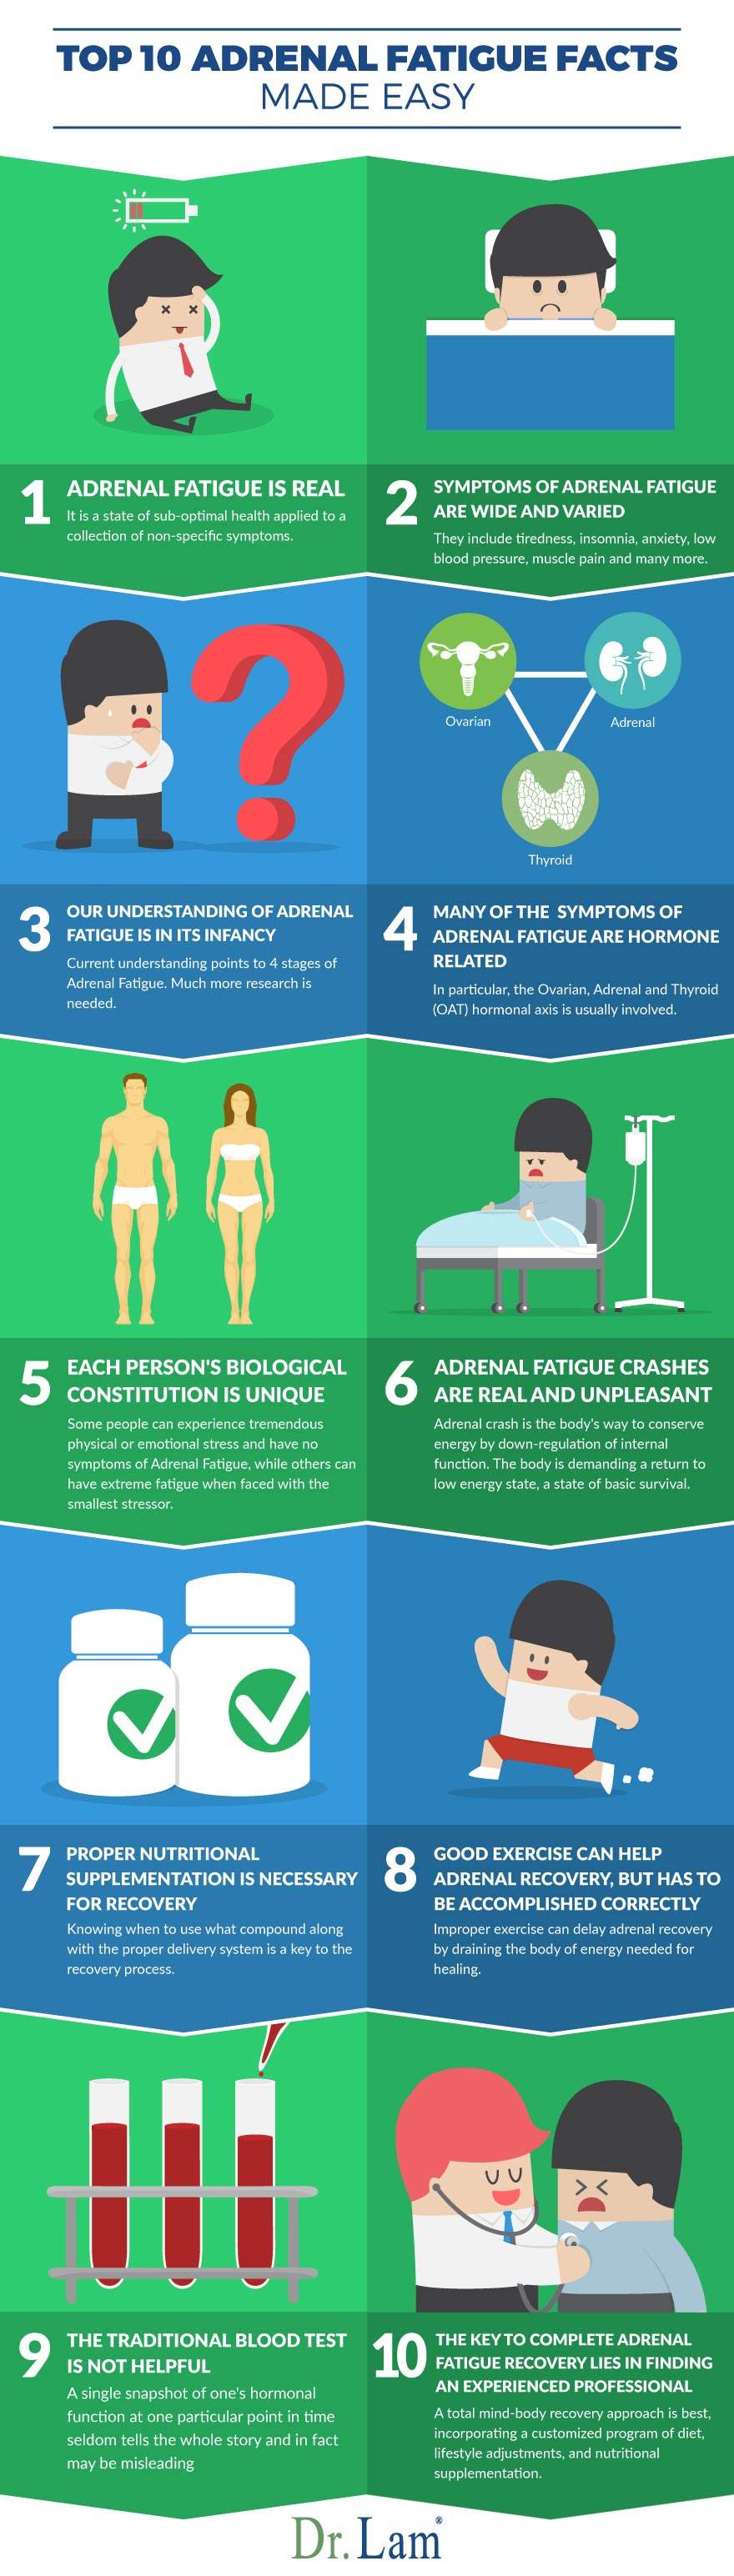 Check out this easy to understand infographic about what is Adrenal Fatigue facts